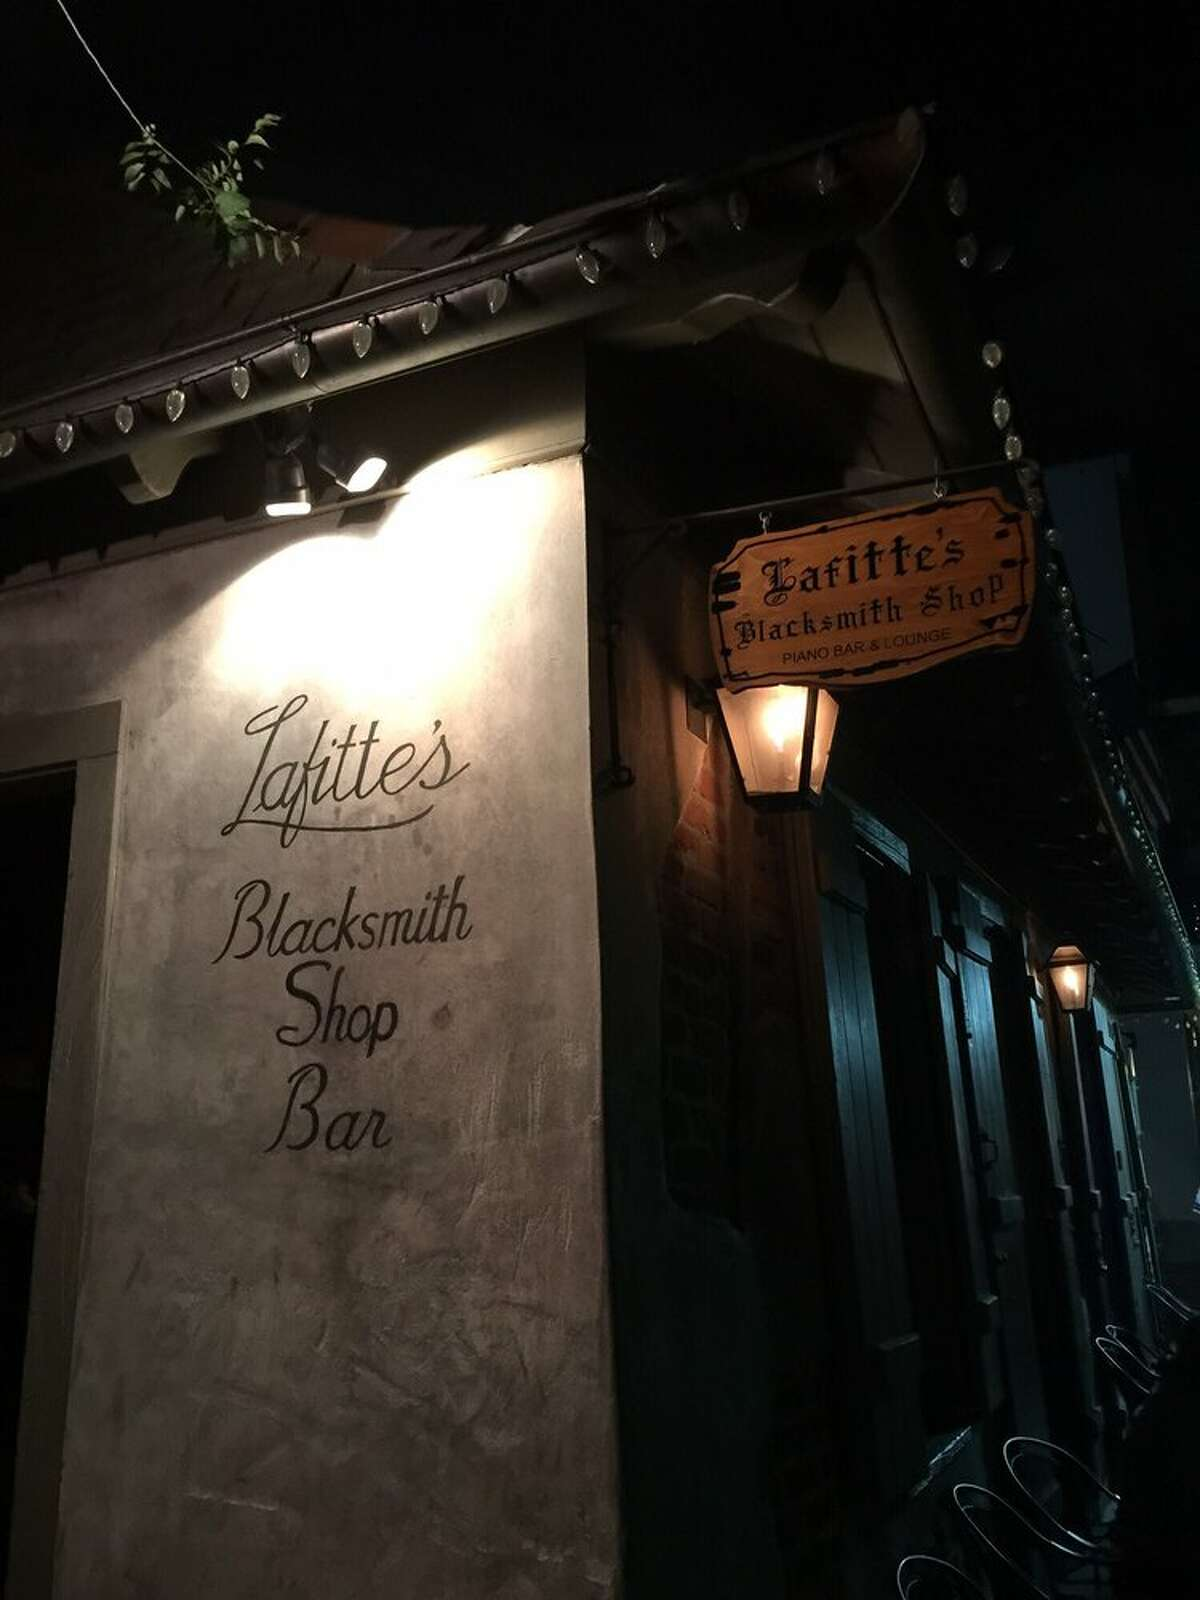 Lafitte's Blacksmith Shop & Bar 941 Bourbon Street, New Orleans, LA 70116 This bar looks especially spooky at night. Yelp/Melissa E.